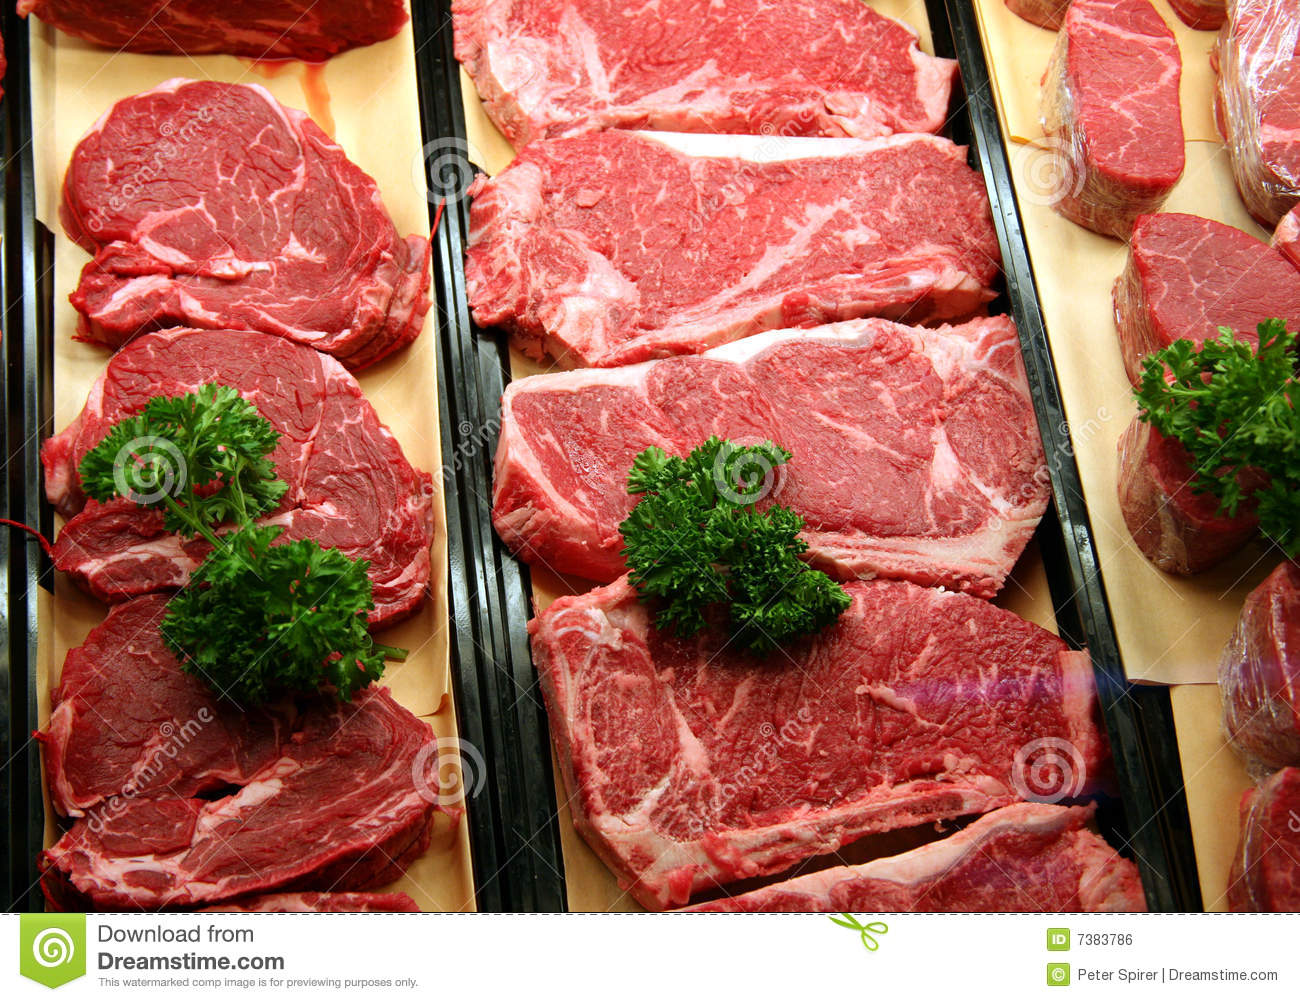 Incredible Butcher Shop Beef Cuts 1300 x 1002 · 284 kB · jpeg